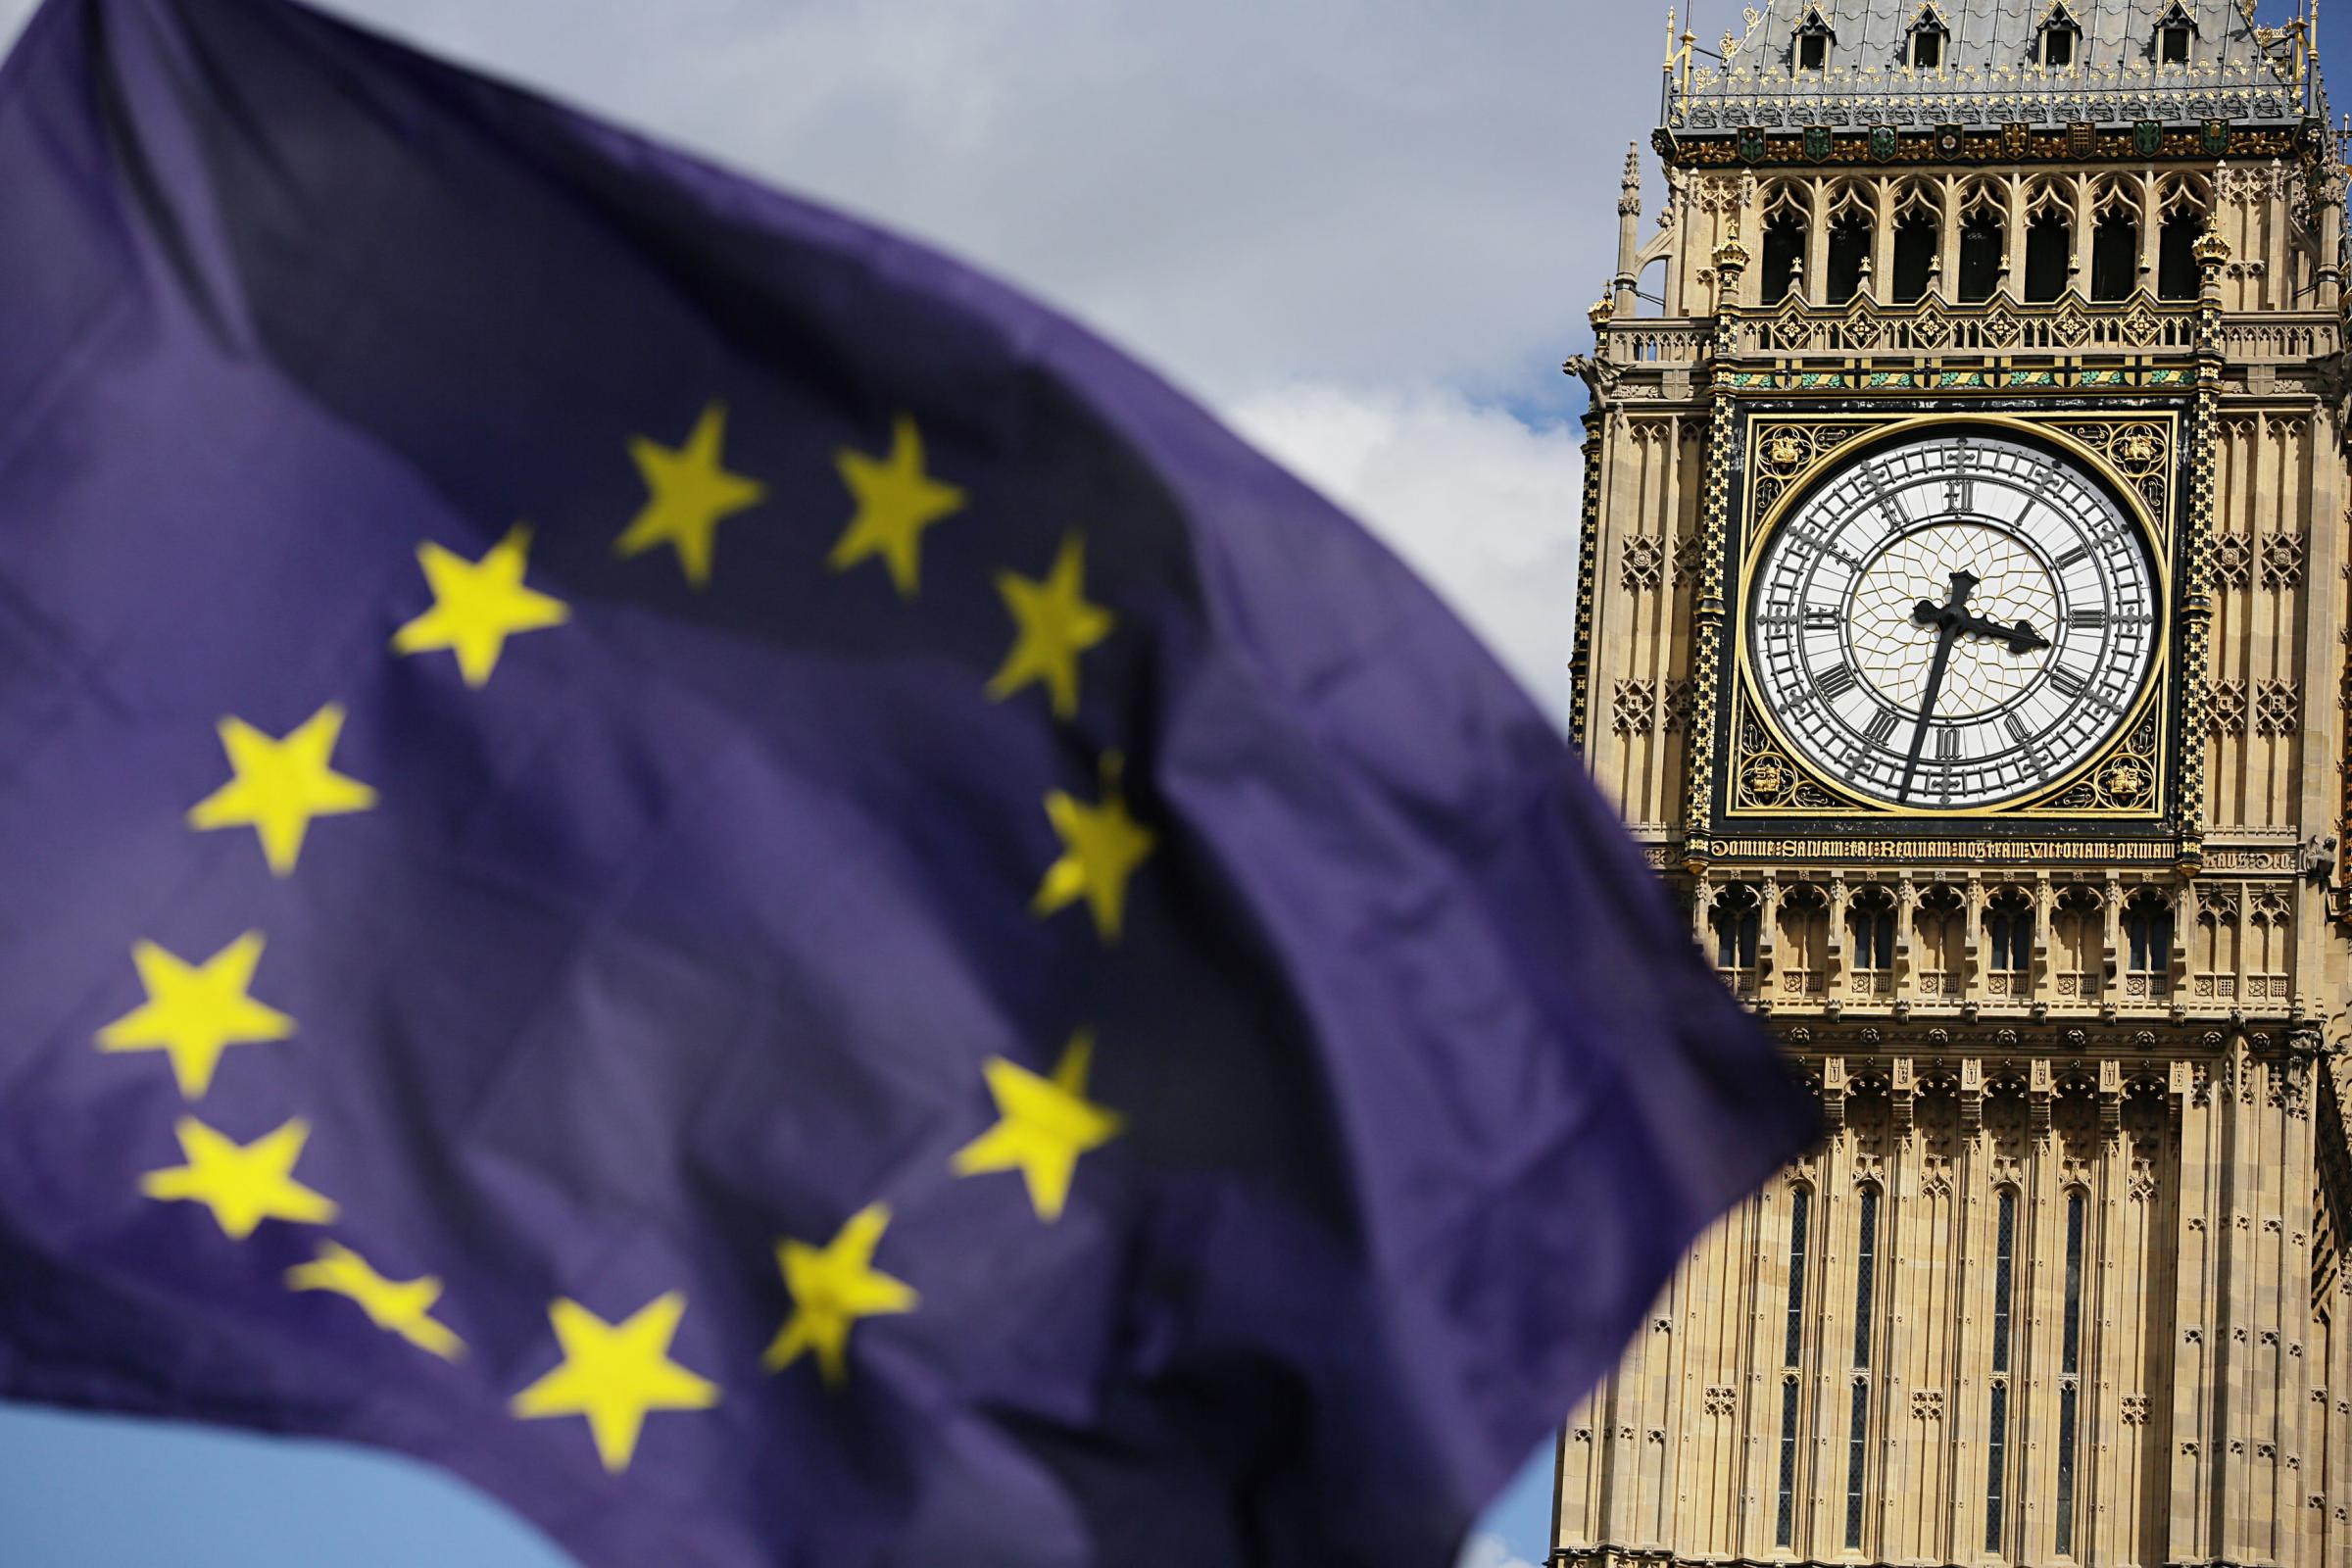 LETTER: Let's remember the historical facts when discussing Brexit